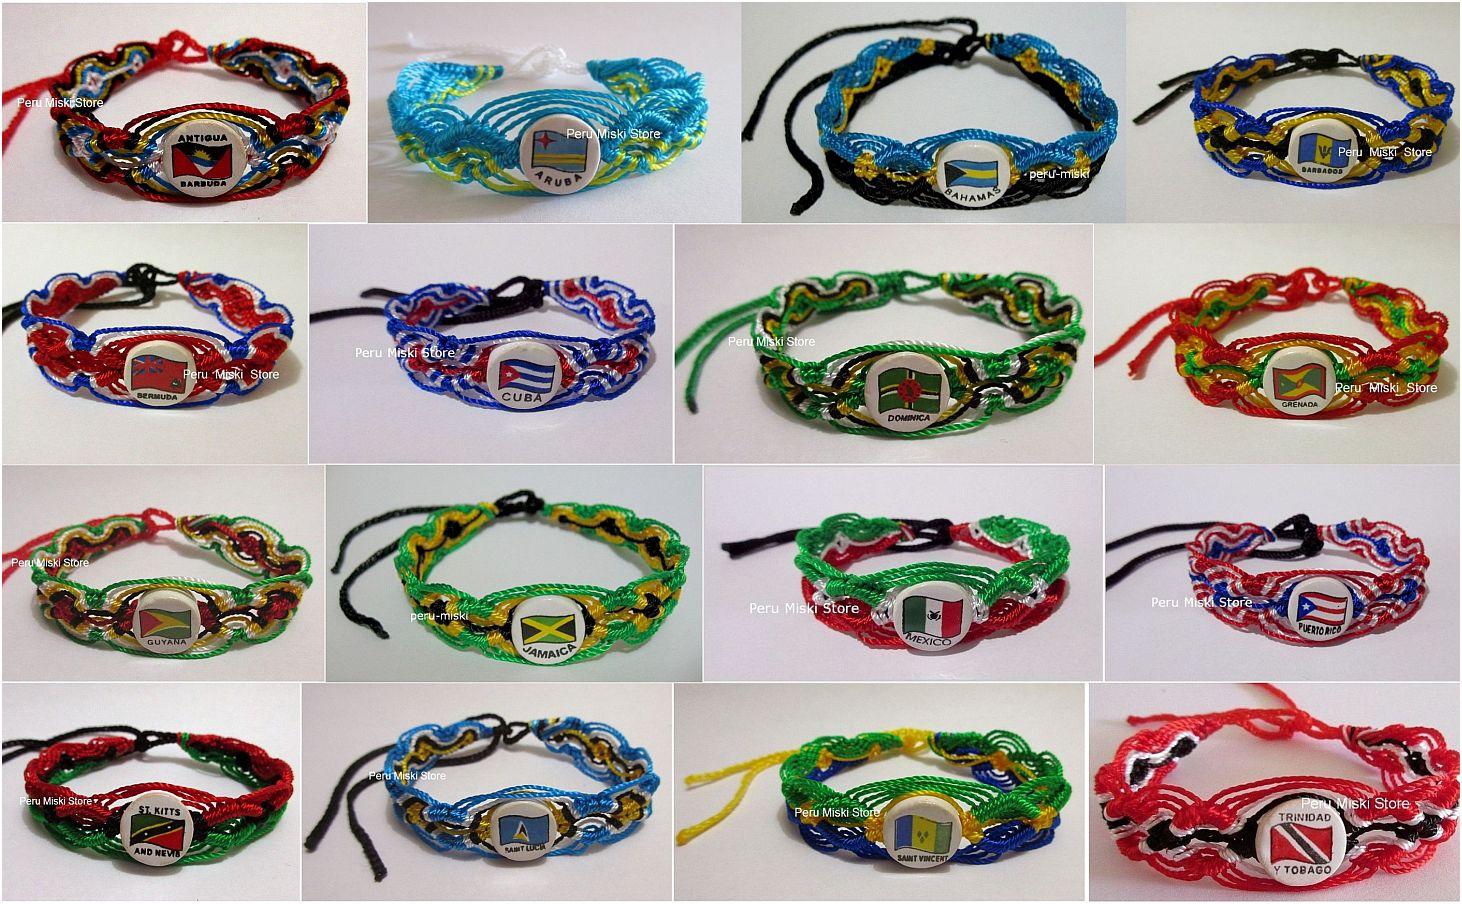 Friendship Bracelets with ceramic beads, assorted flags